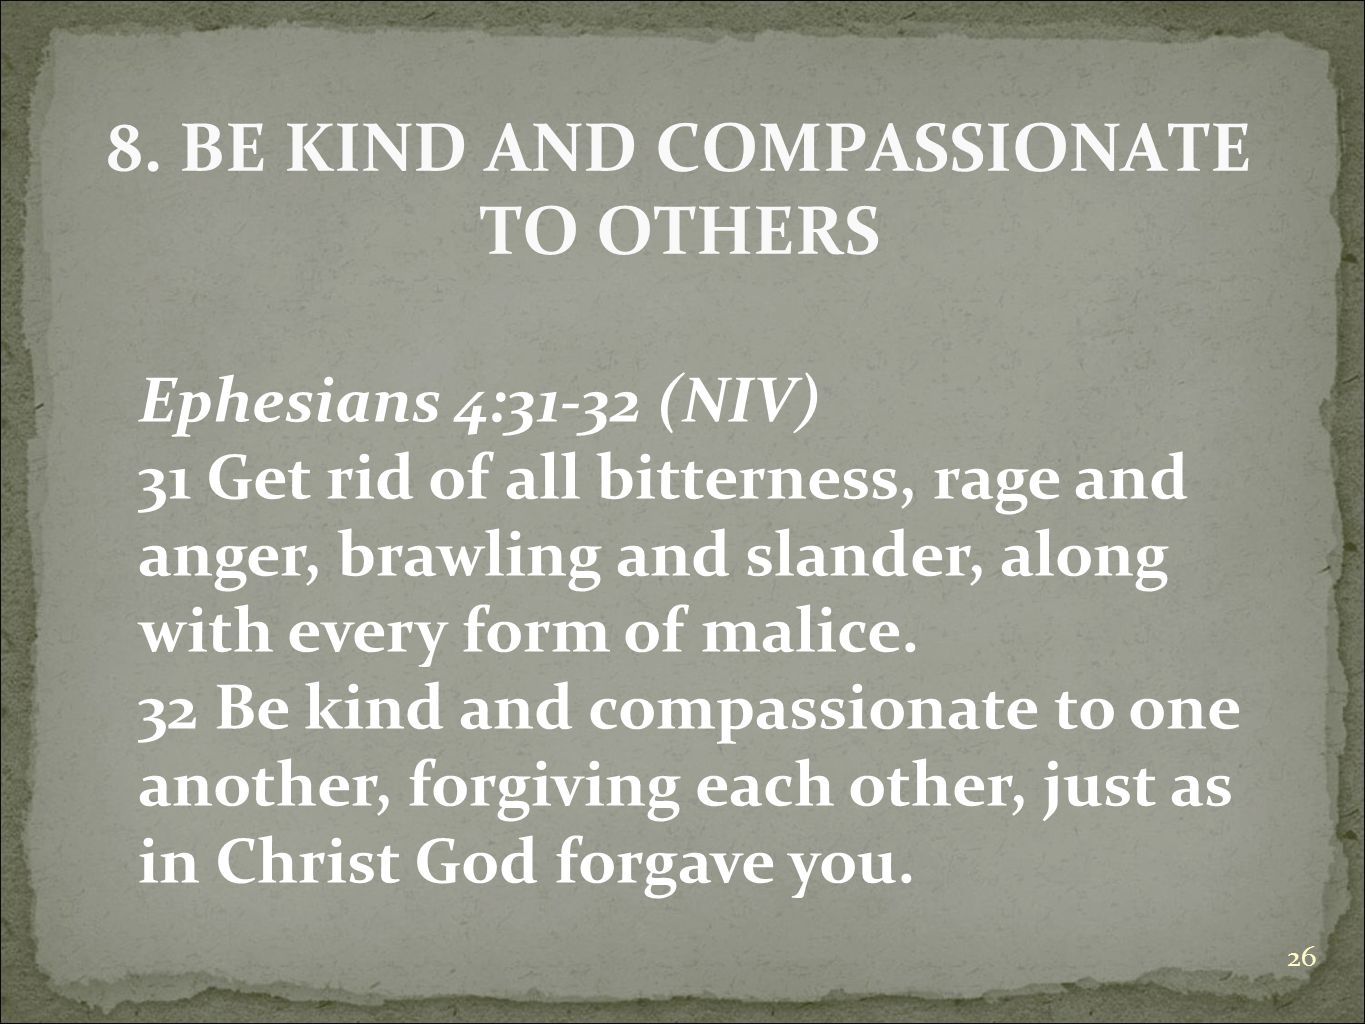 8. BE KIND AND COMPASSIONATE TO OTHERS